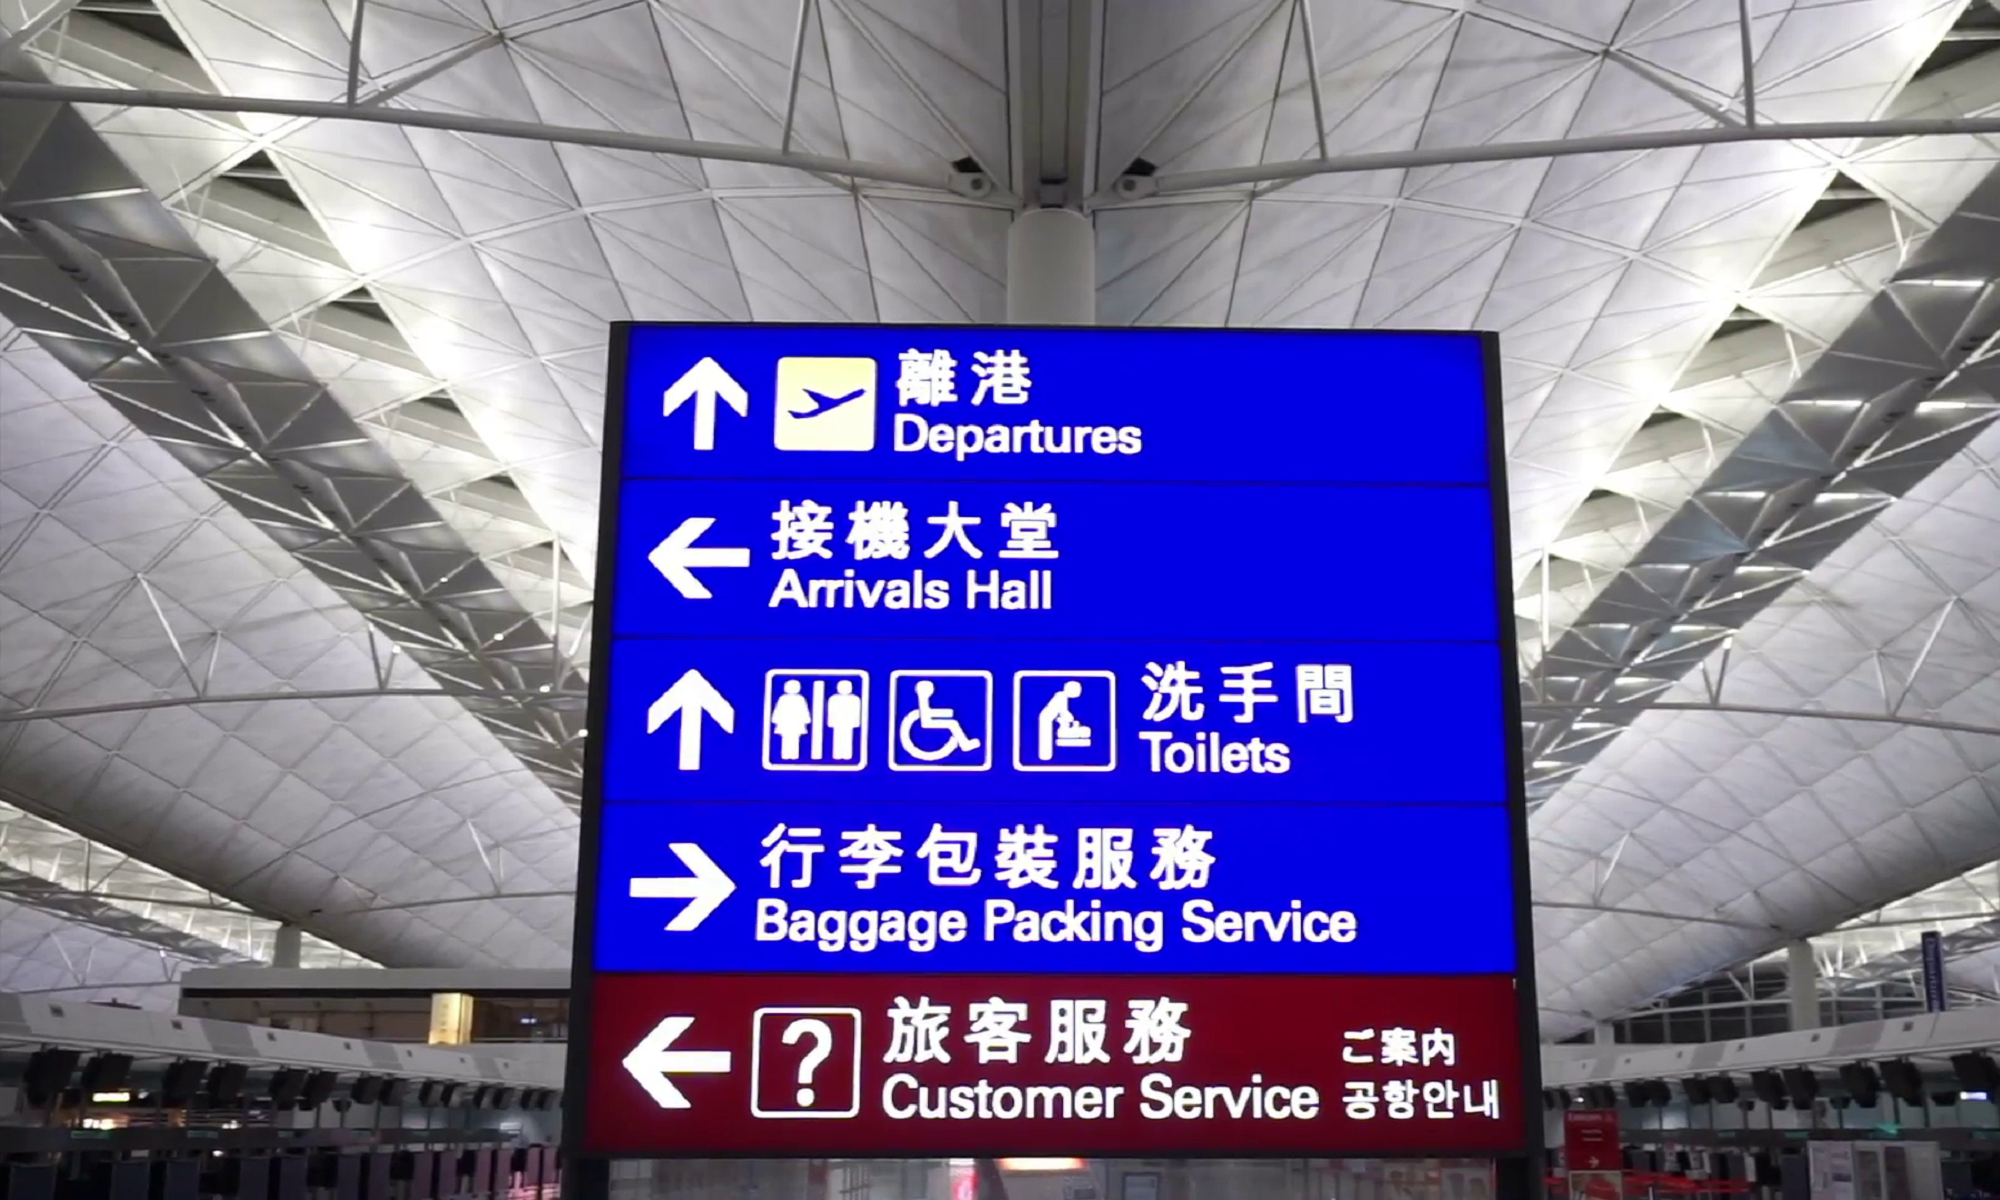 Chinese airport departure sign.